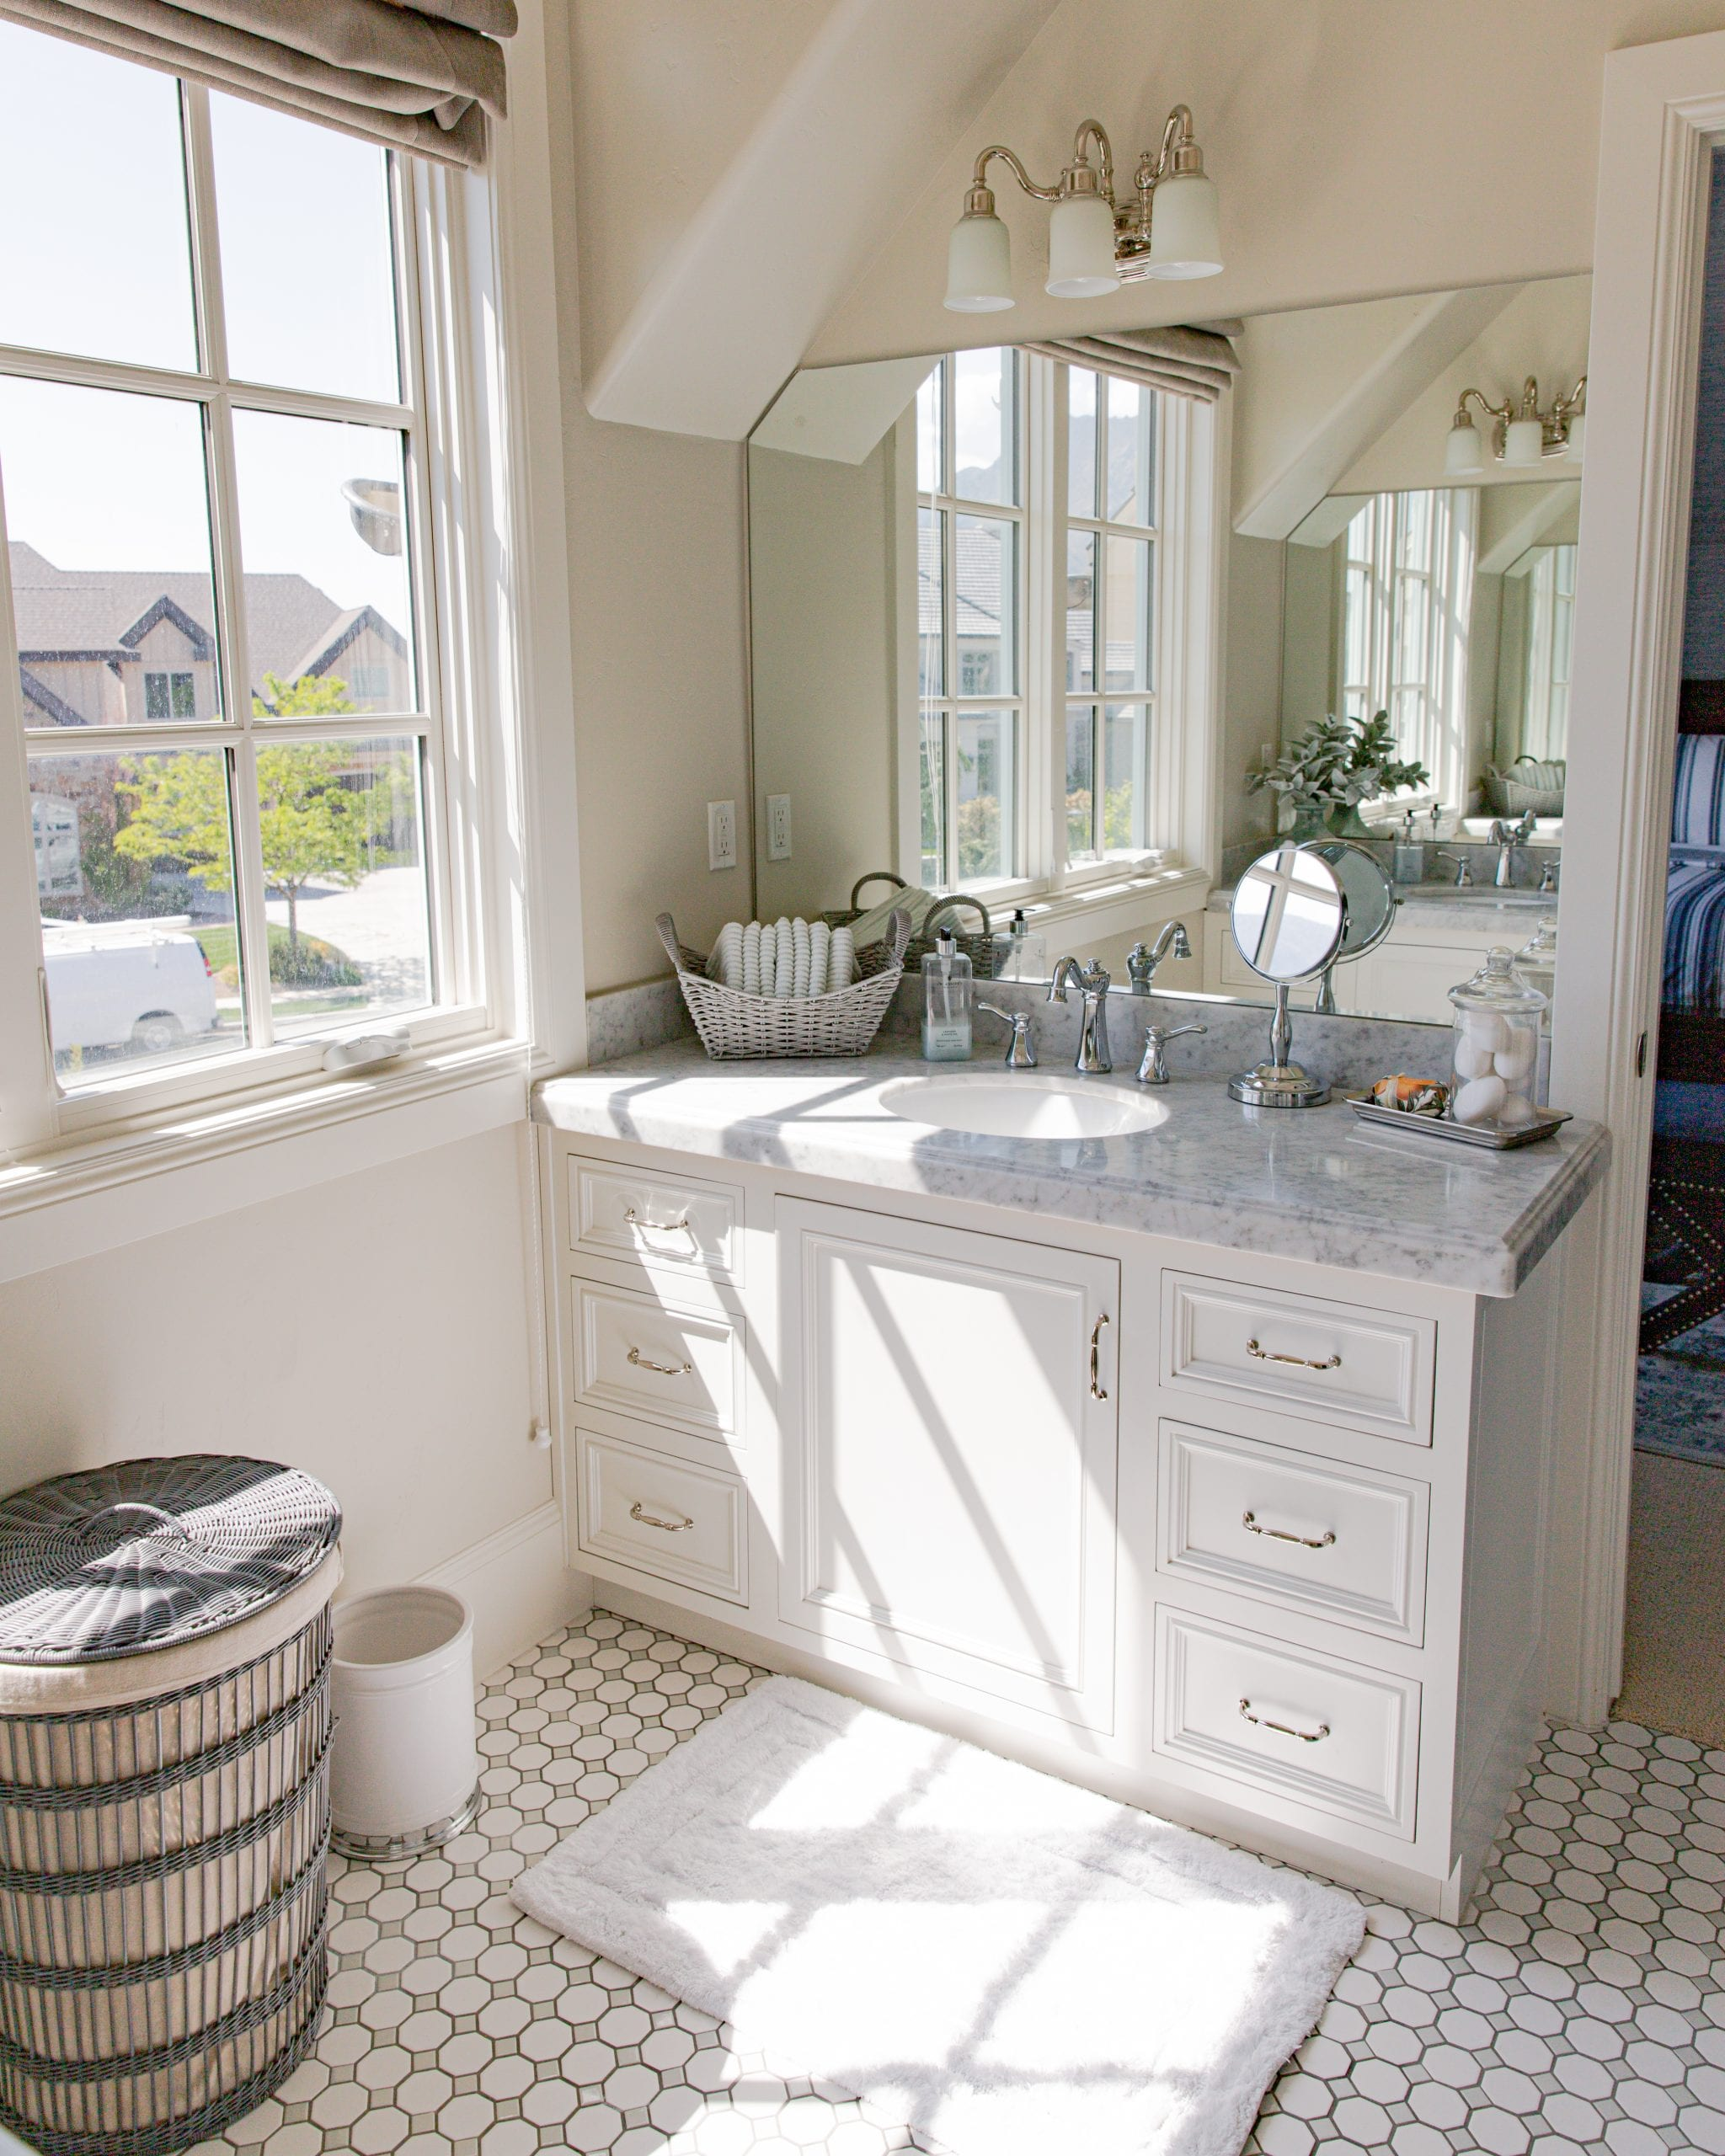 bathroom | How To Prepare Your Home For Guests | Home With Holly J